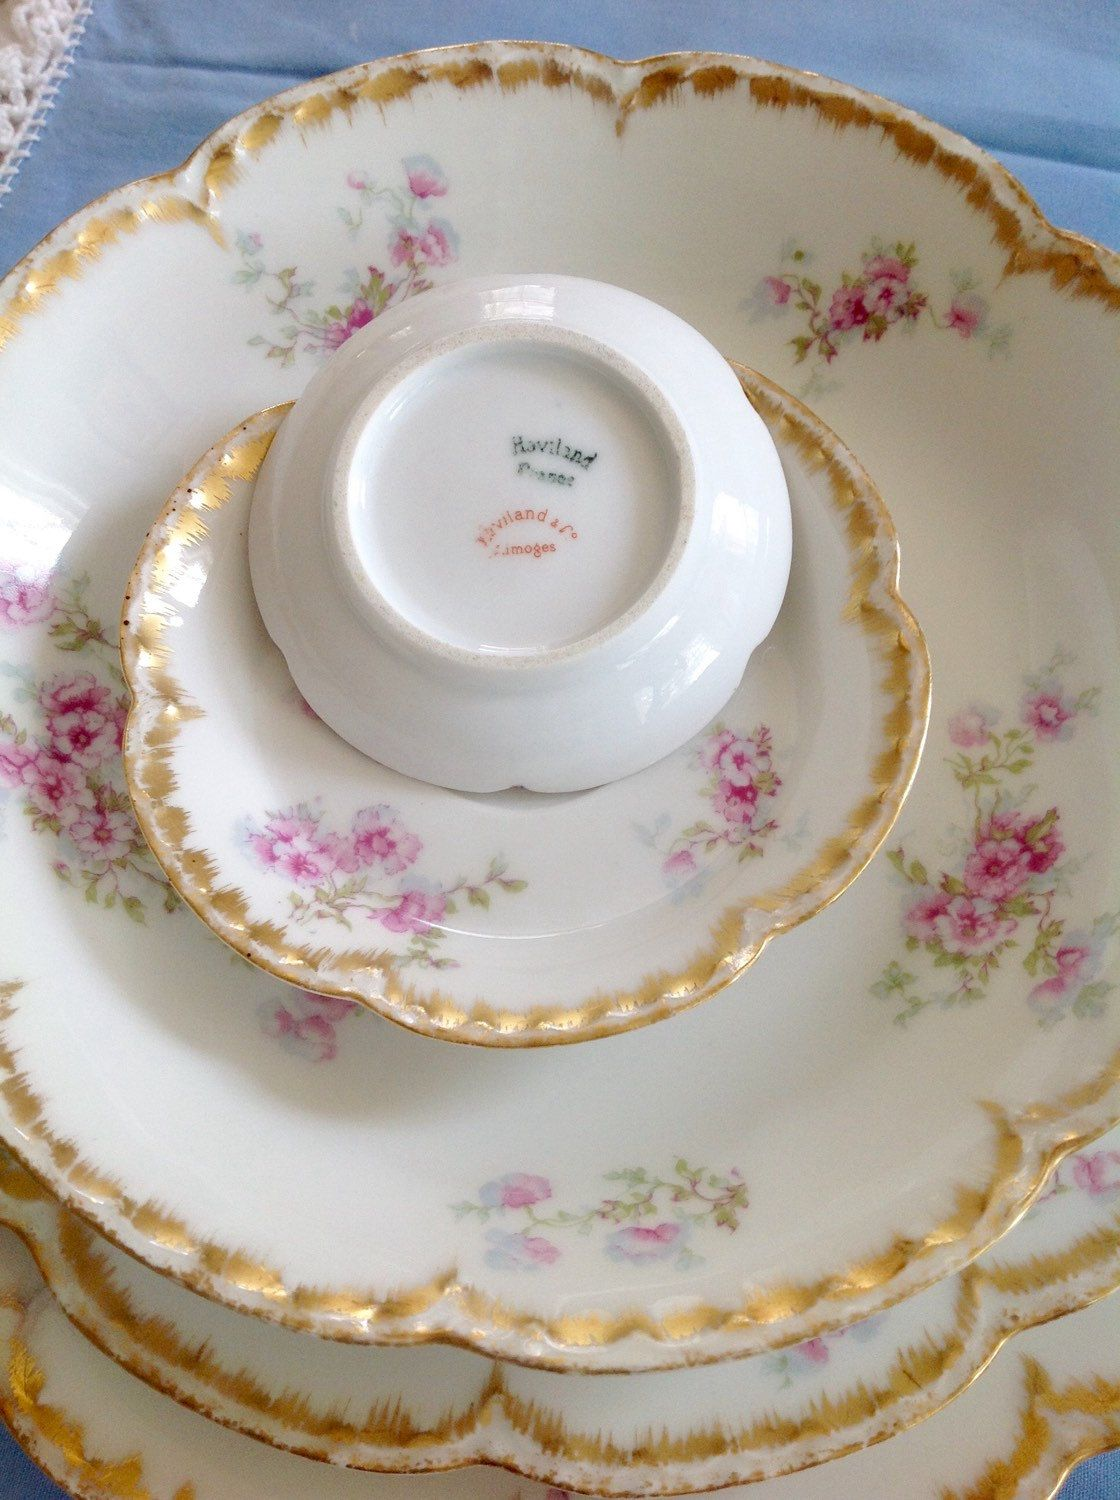 Lovely Antique Haviland Limoges french china set 4 pieces by PucaByElphiena on Etsy